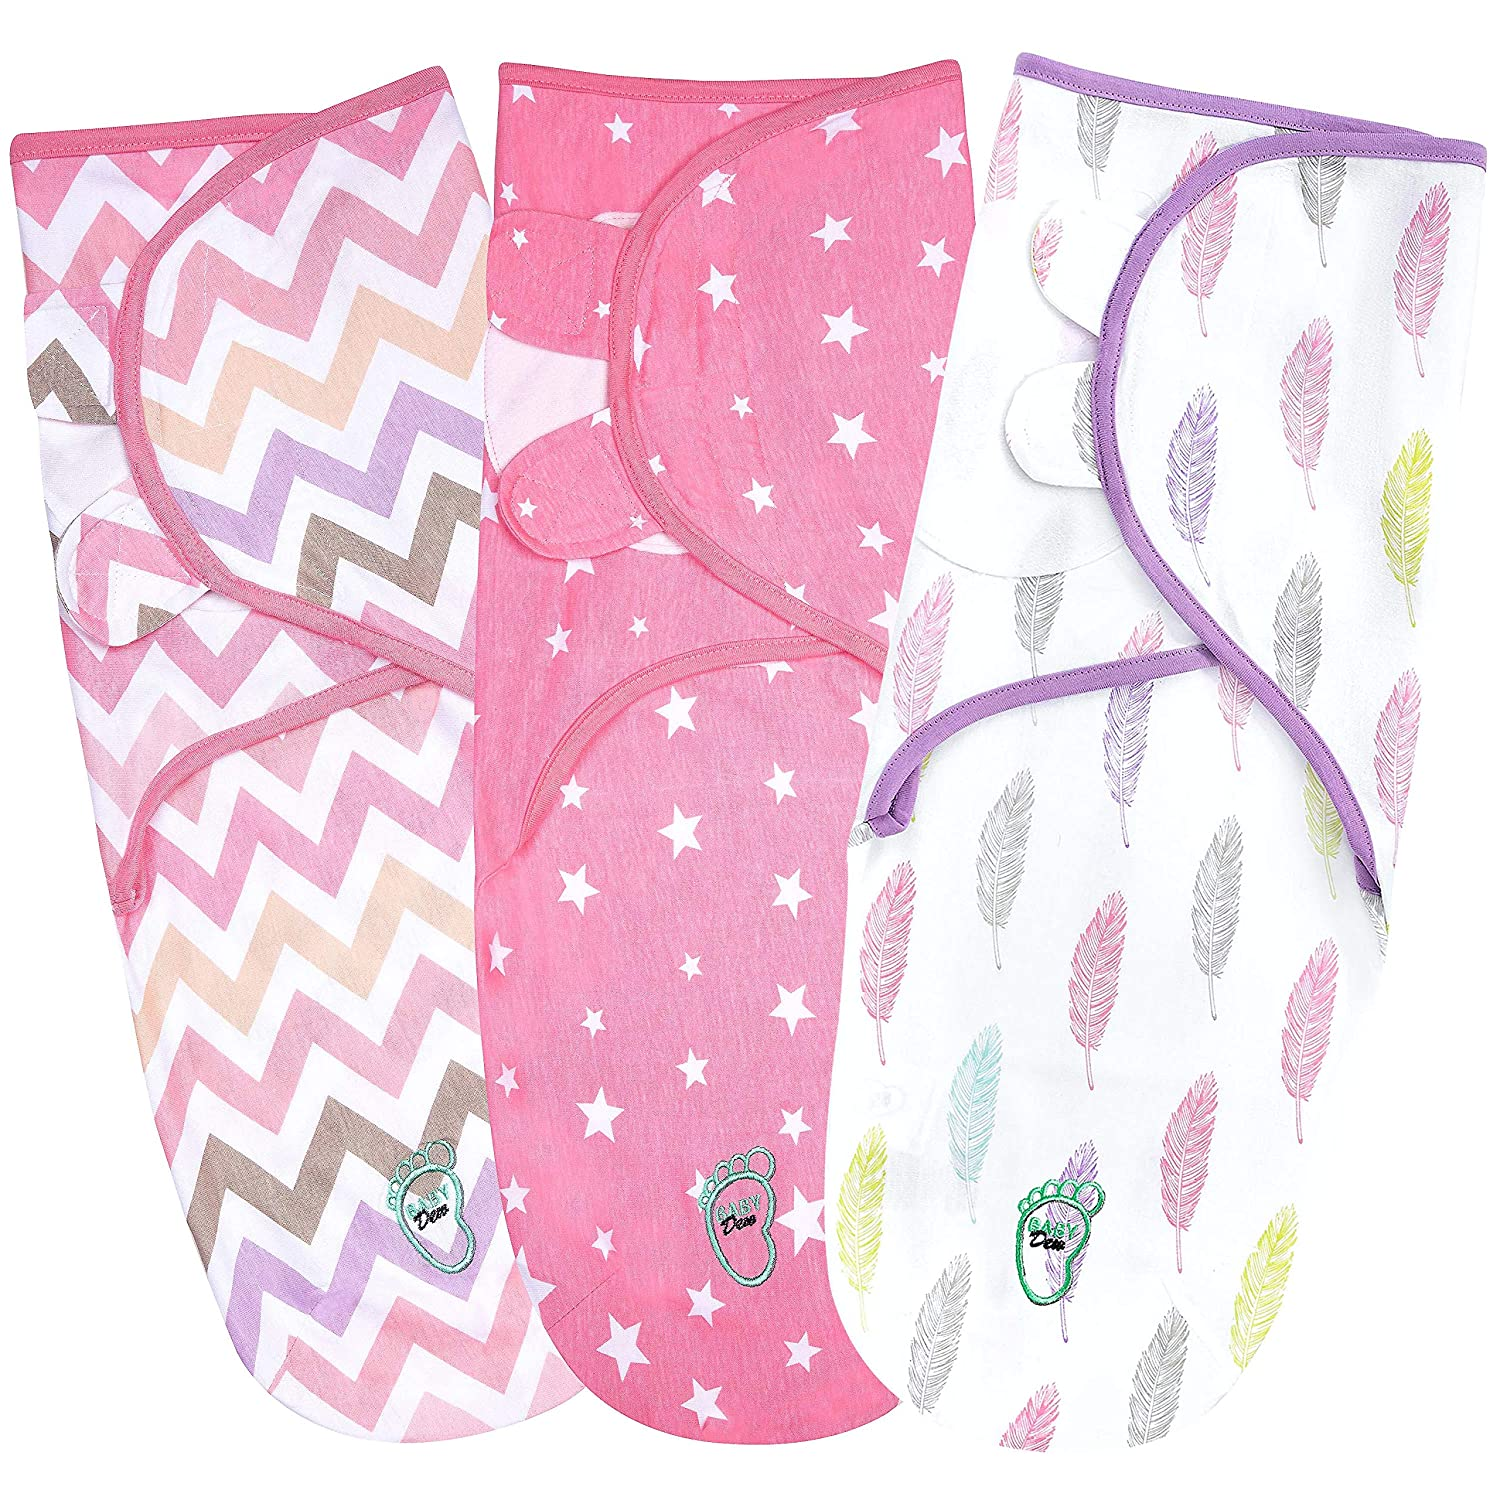 Baby Swaddle Blanket Wrap for Newborn & Infant, 0-3 Month Swaddlers Sack with Adjustable Wings, 3 Pack Breathable Sleep Wrap Sack for Girls (Pink)